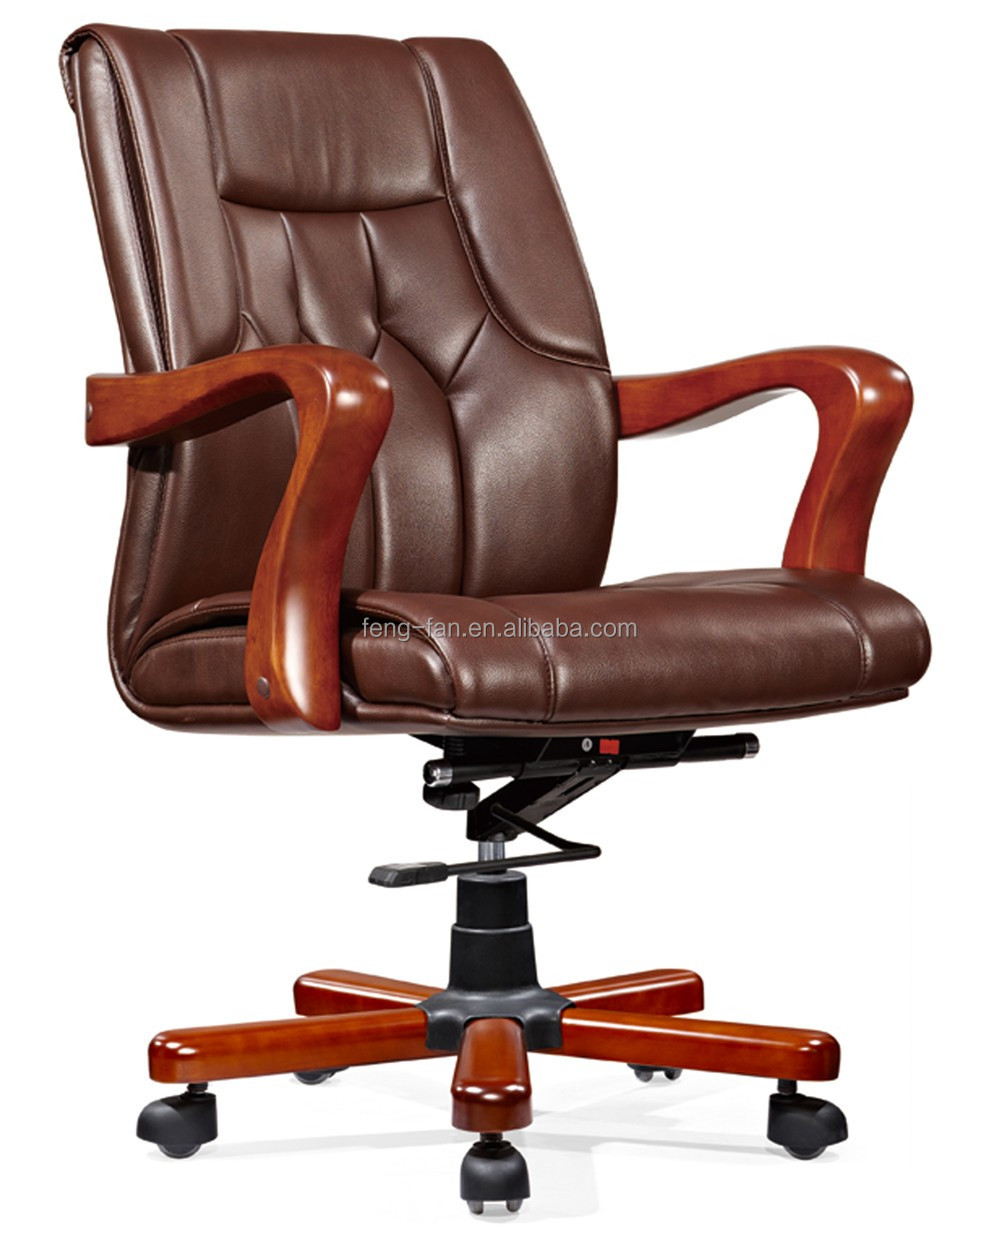 Wholesale Swivel Executive Computer Office Chair Luxury Leather Seat Back Desk Furniture Chairs